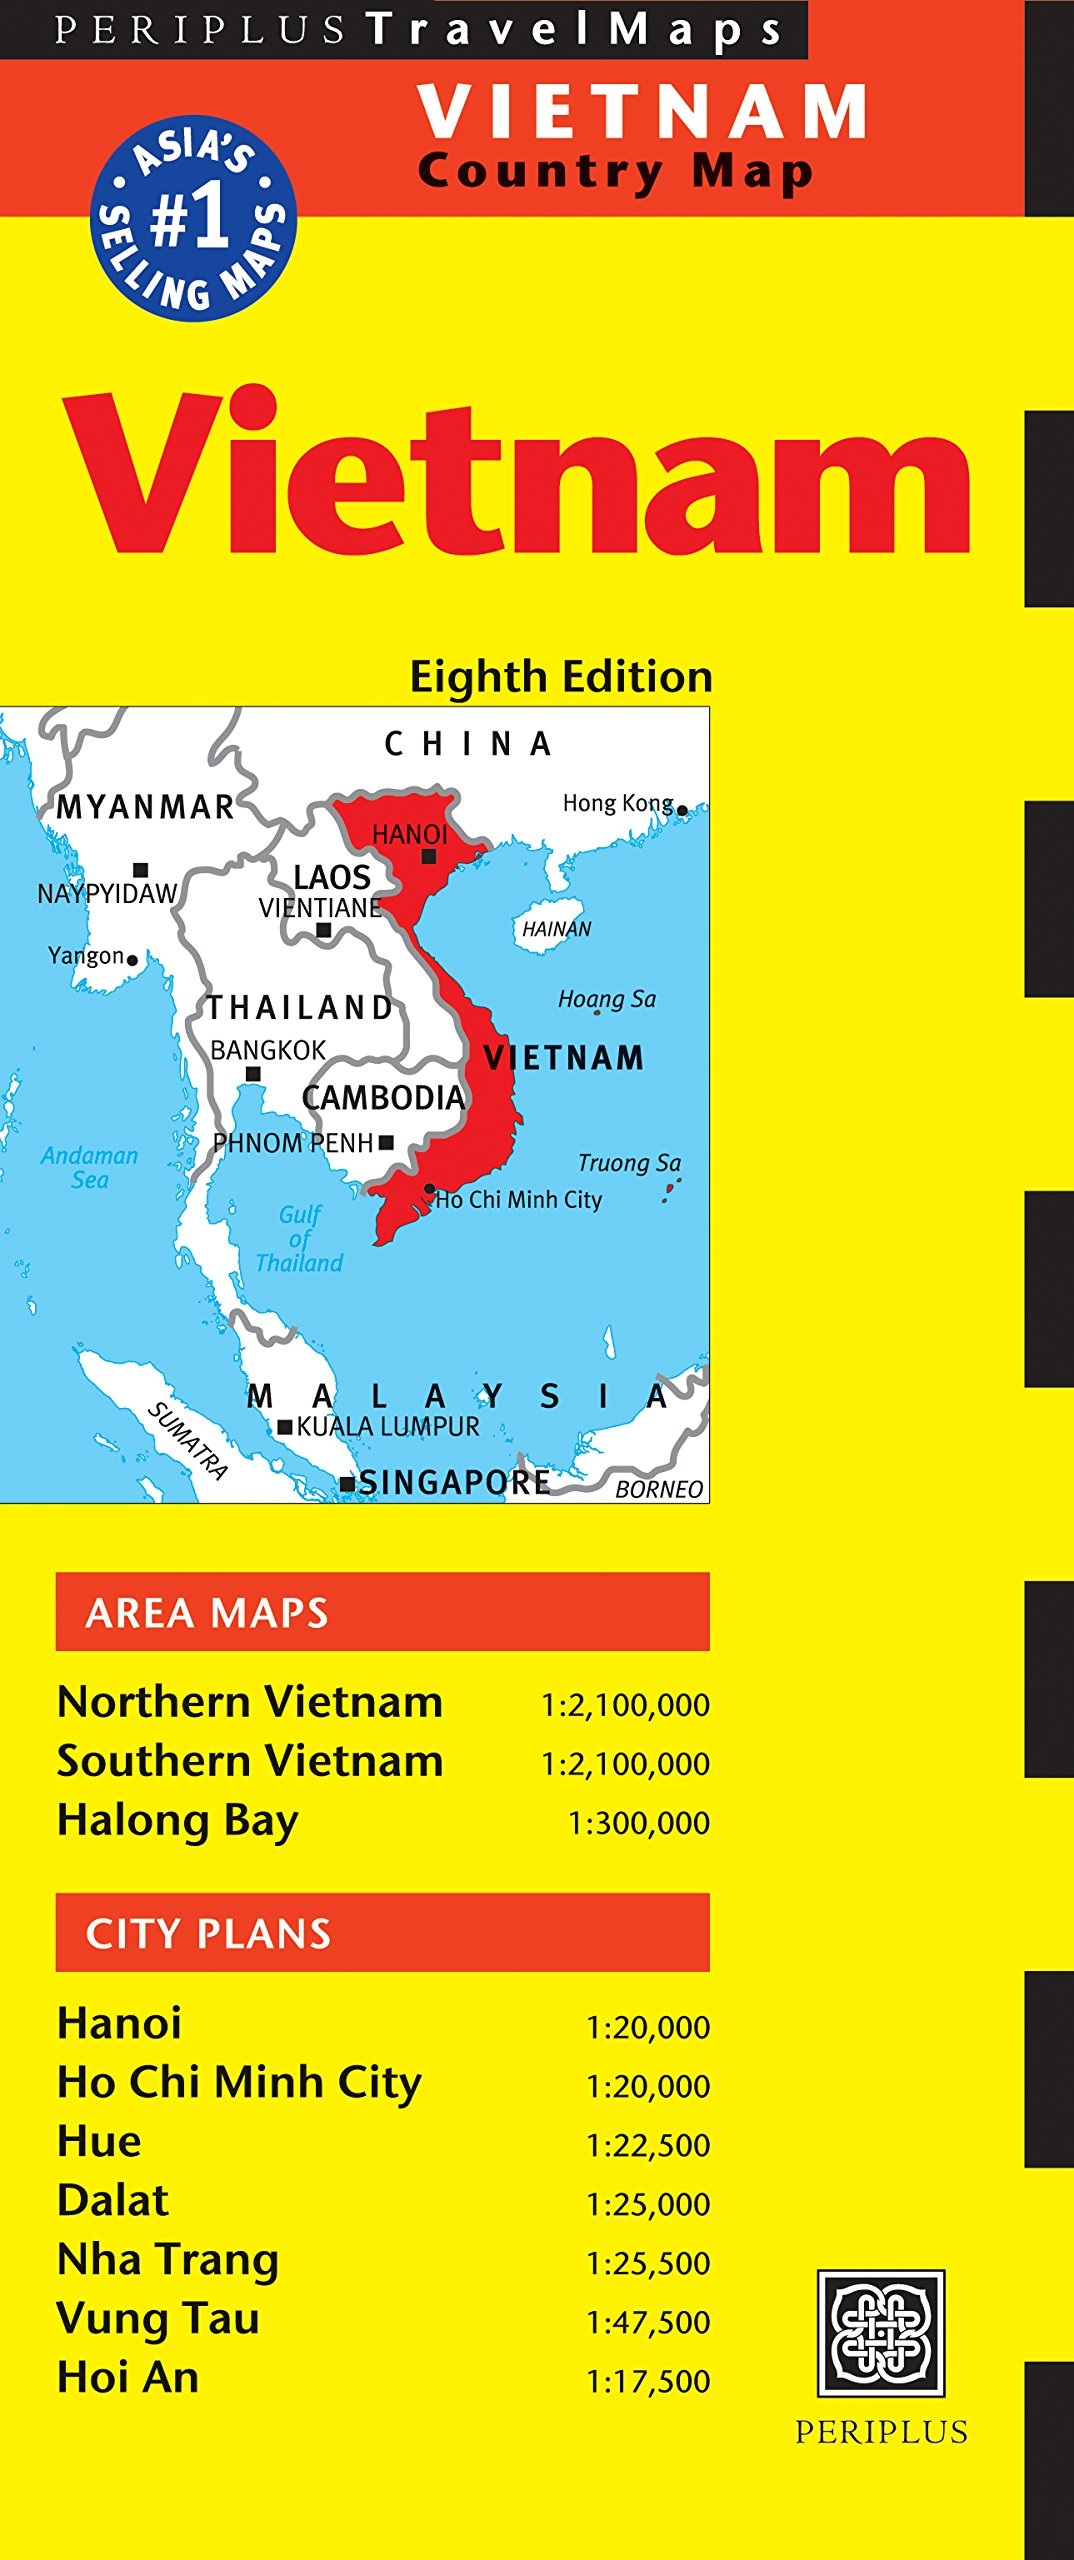 Vietnam Travel Map Eighth Edition (Periplus Travel Maps Country Map)